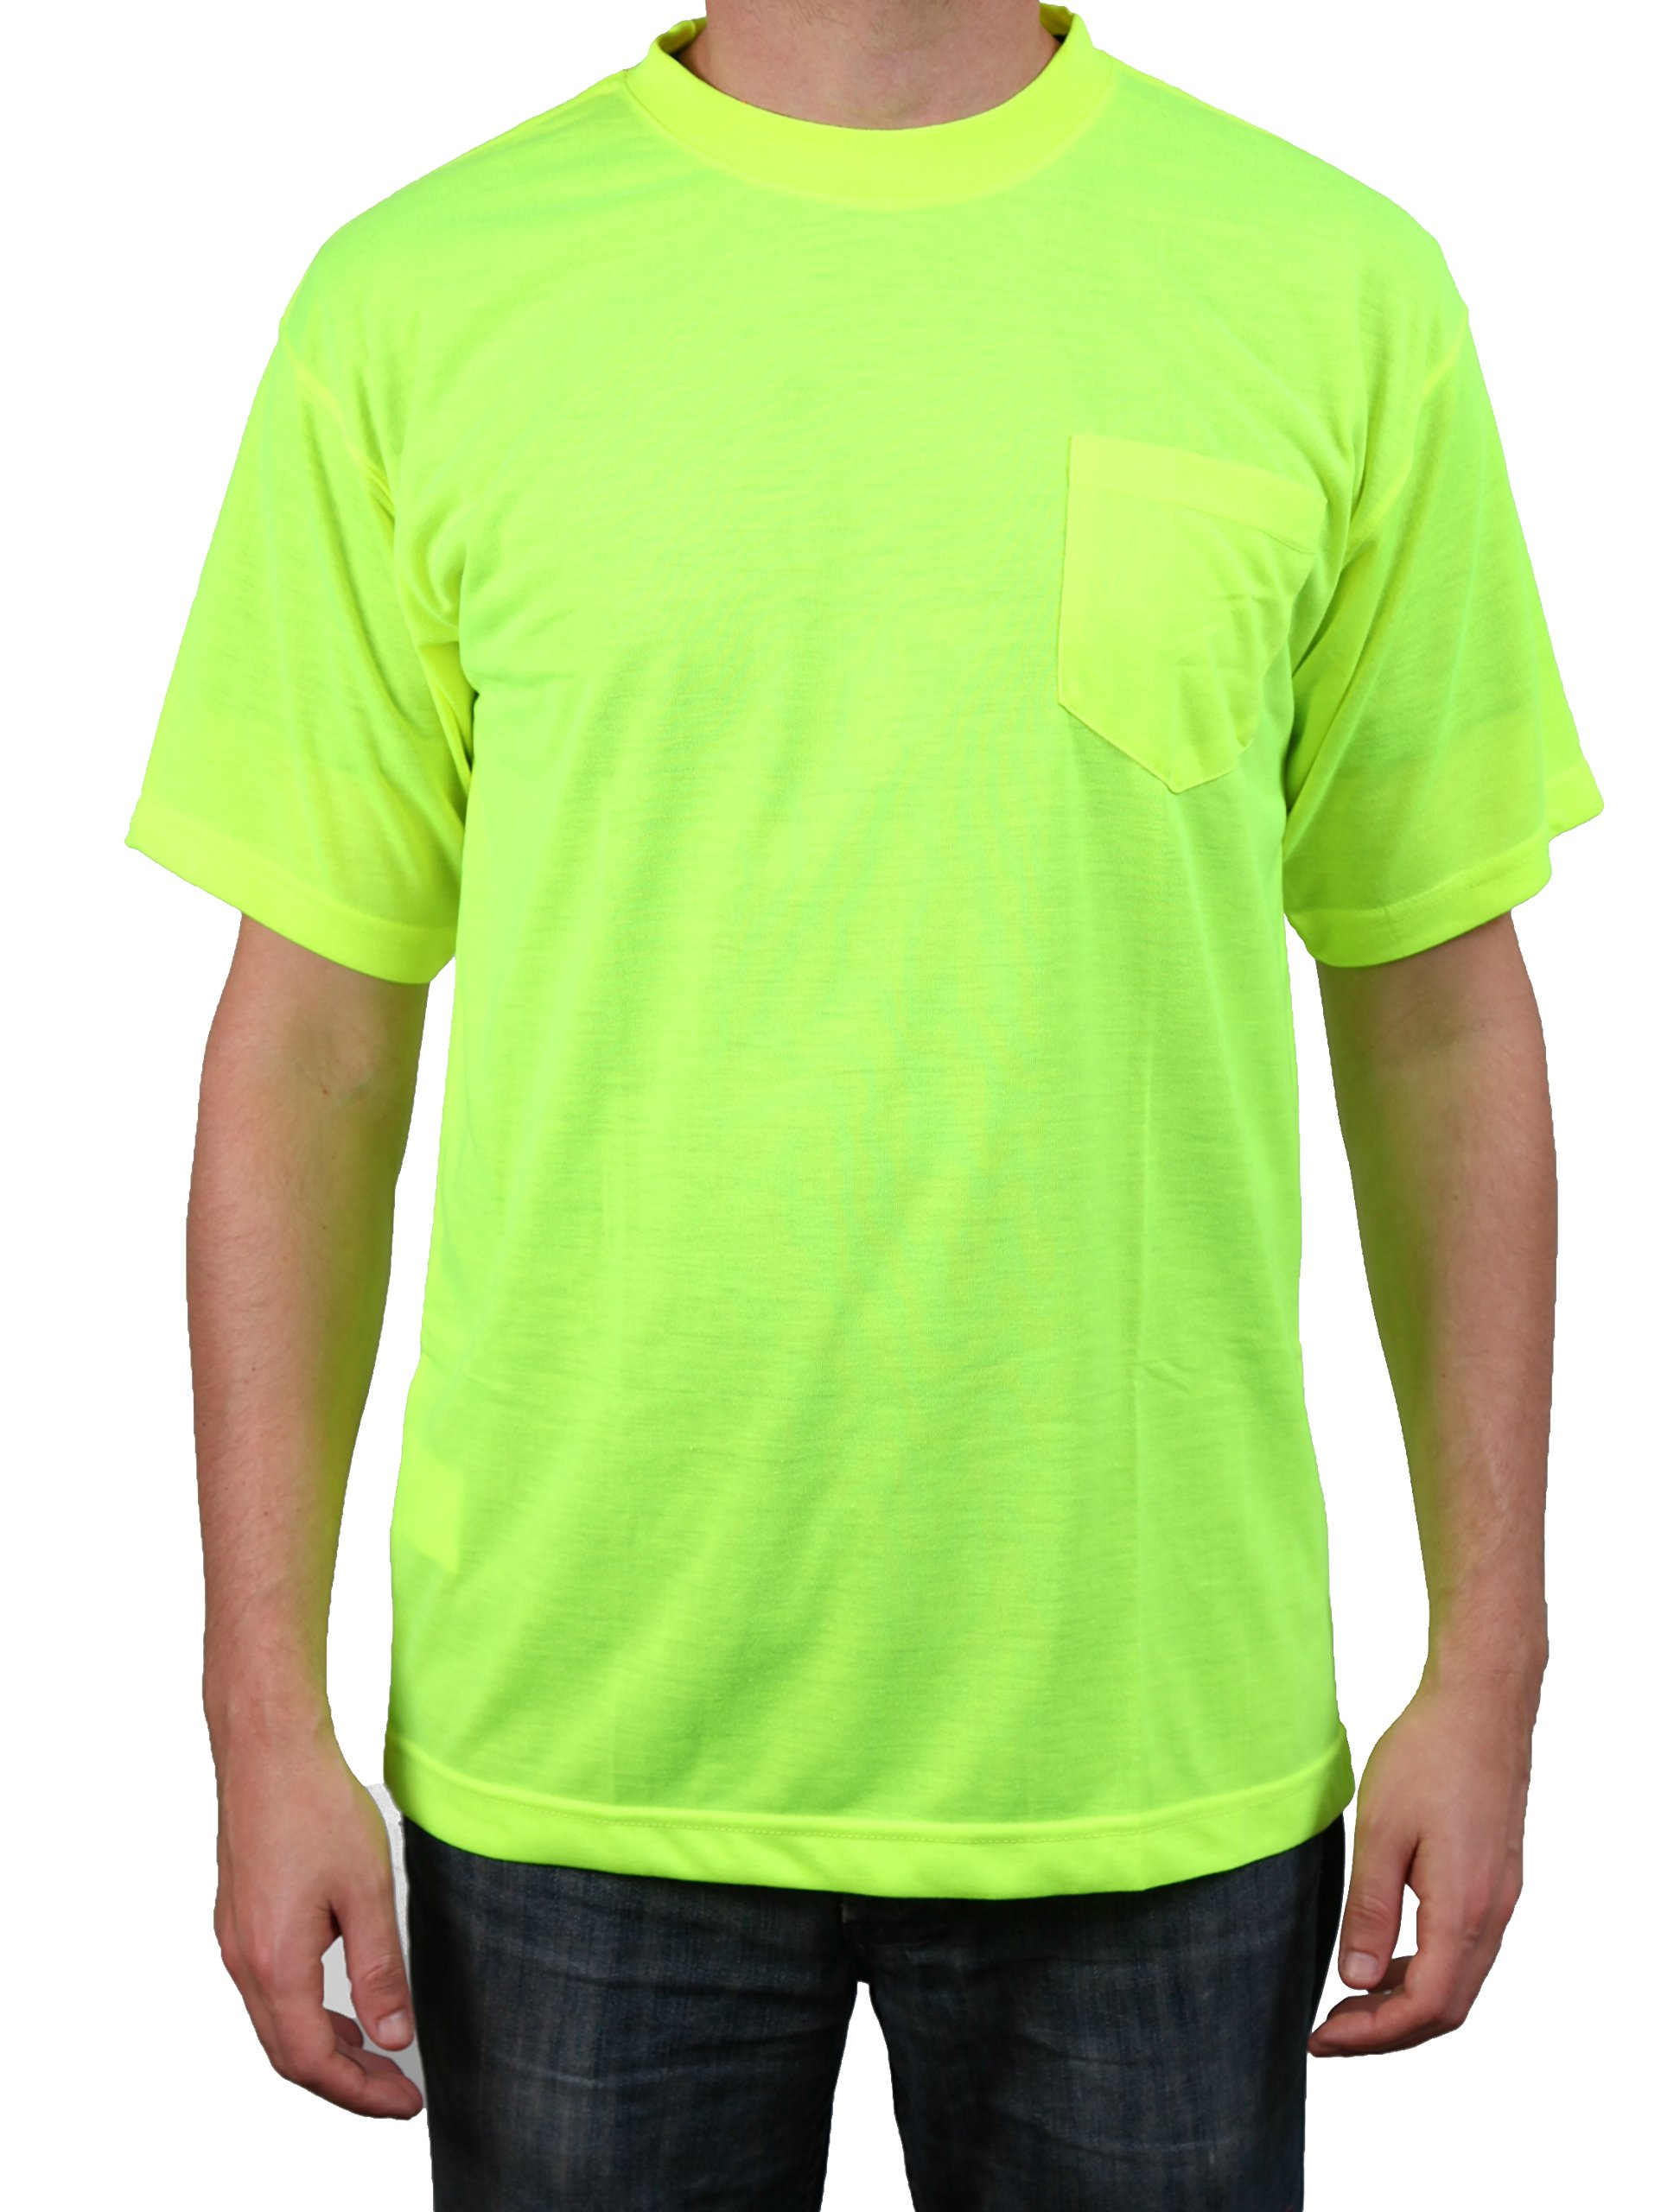 Safety Depot High Visibility Safety Shirt Short Sleeve Moisture Wicking Soft Polyester (Lime, 3XL)